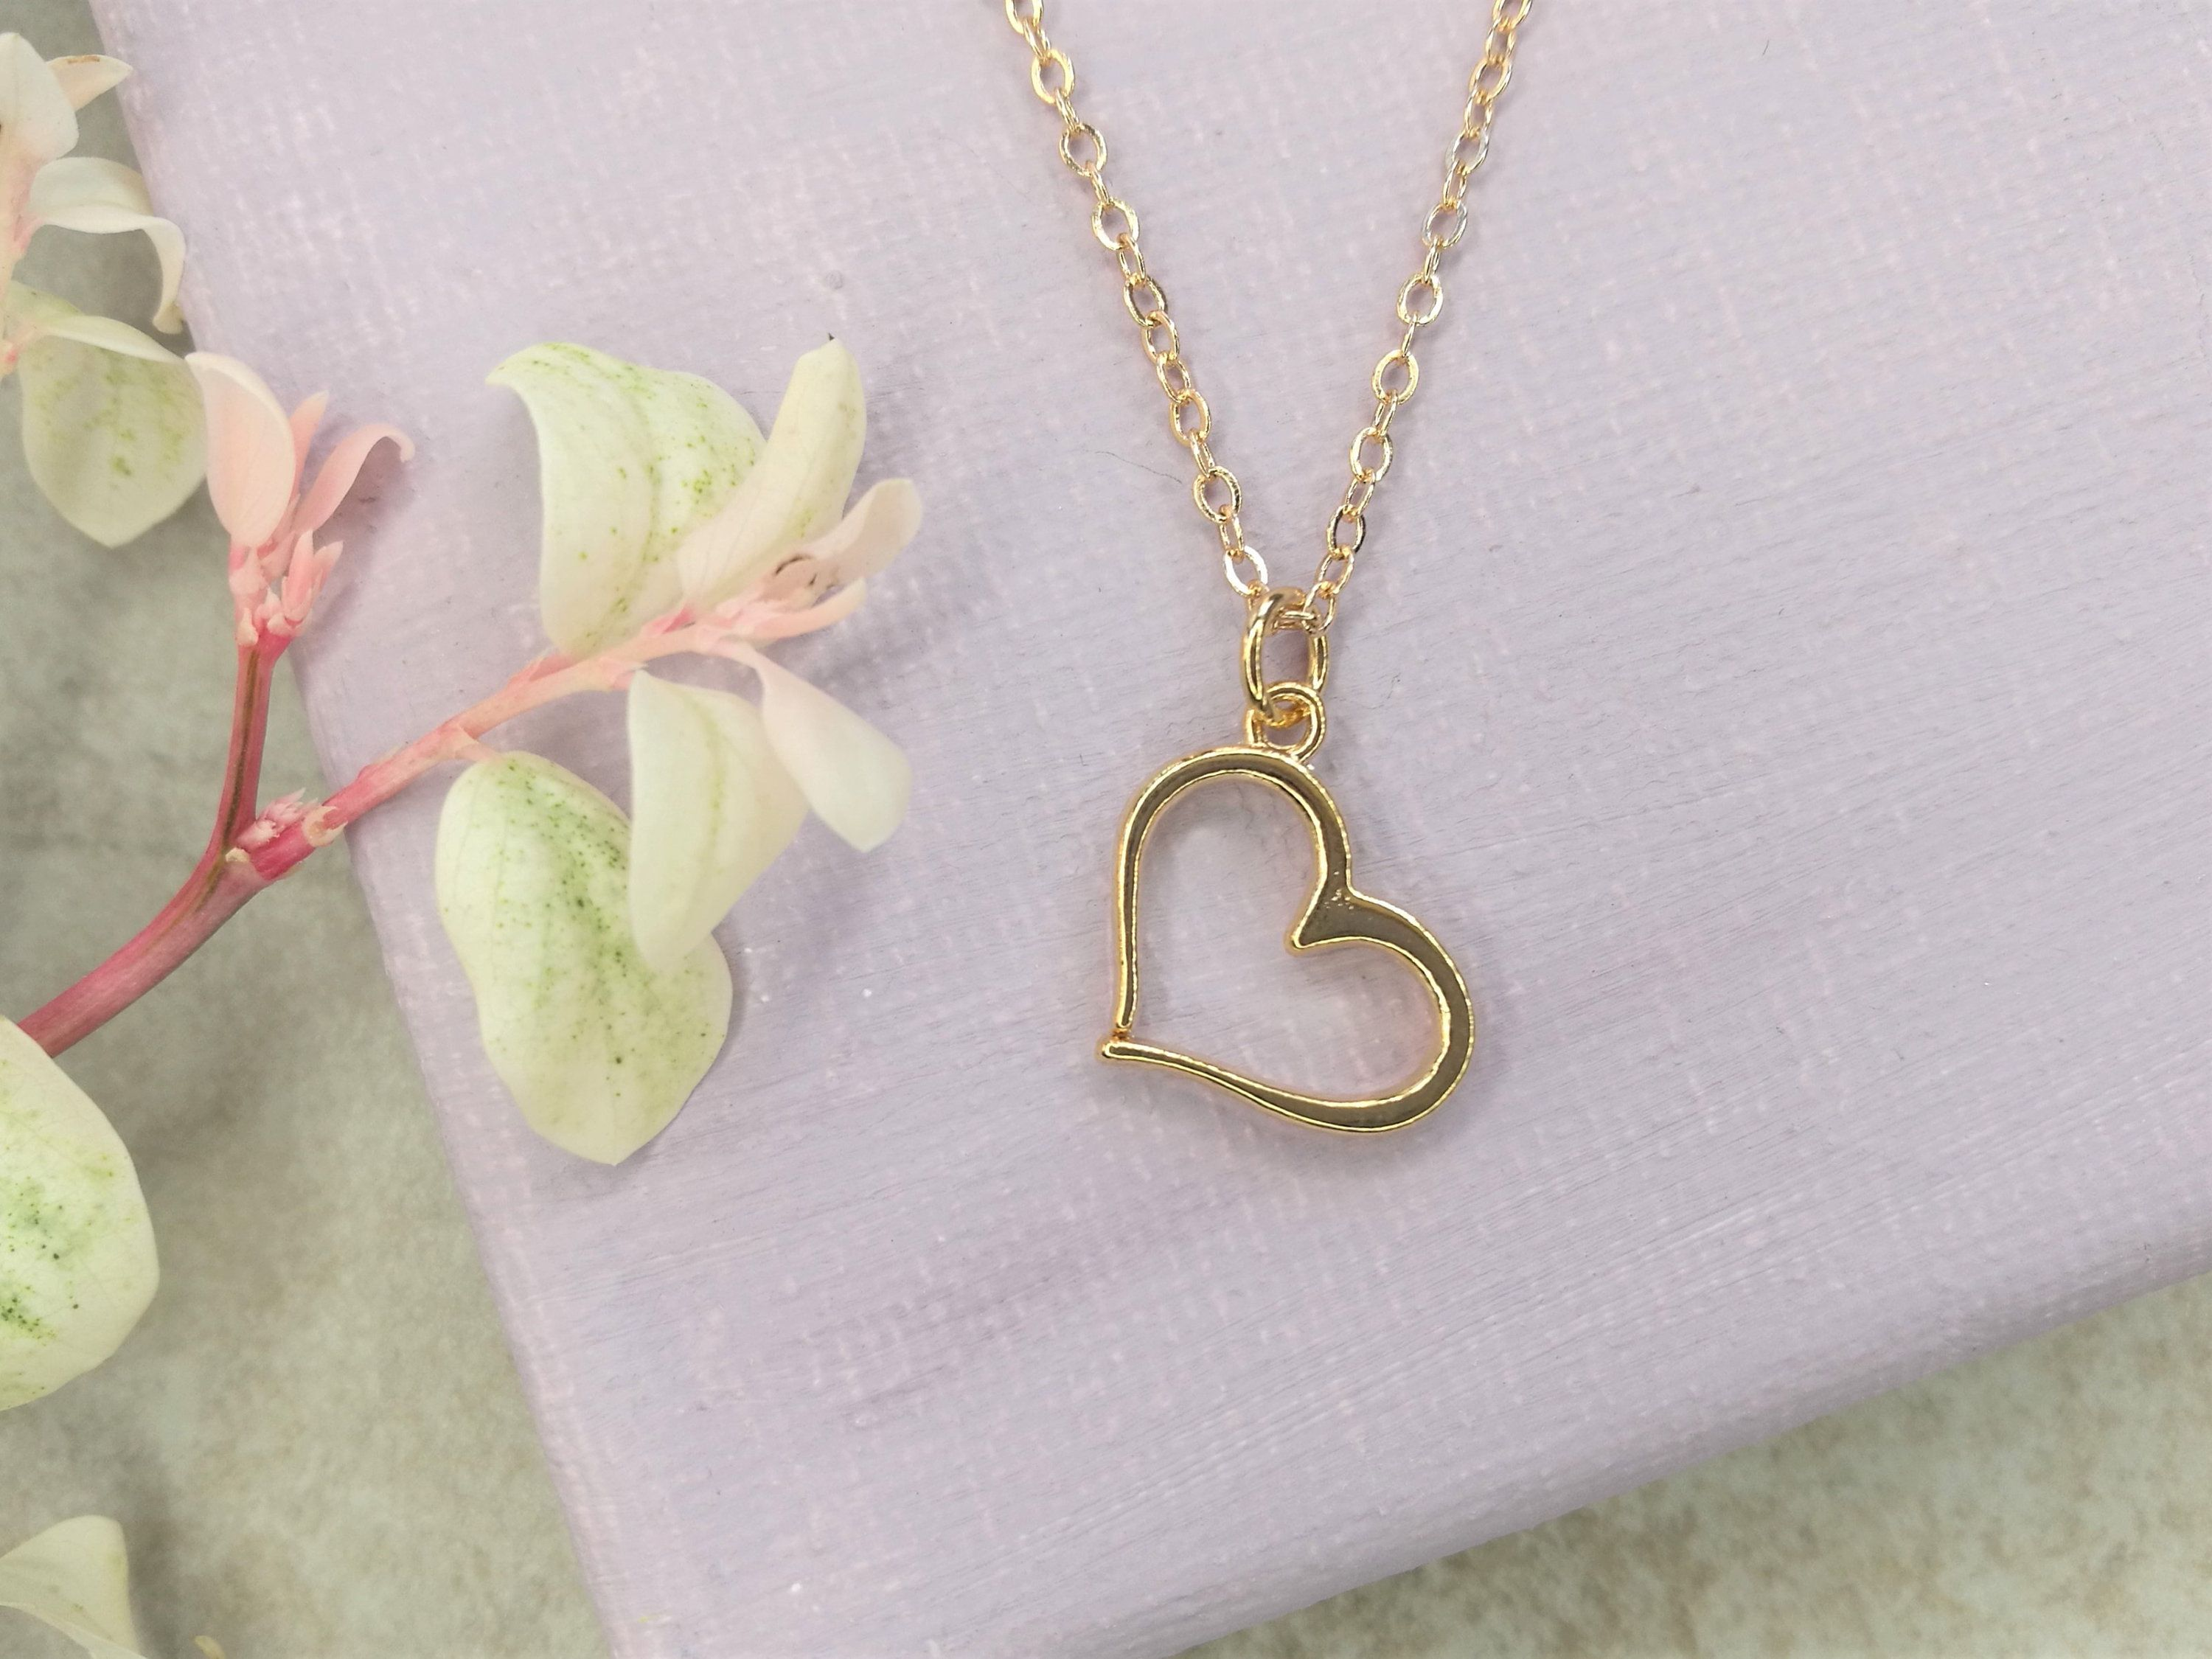 Photo of Gold heart pendant necklace. Heart pendant necklace. Everyday simple necklace. Delicate delicate jewelry. Sisters heart necklace. Friends gift.